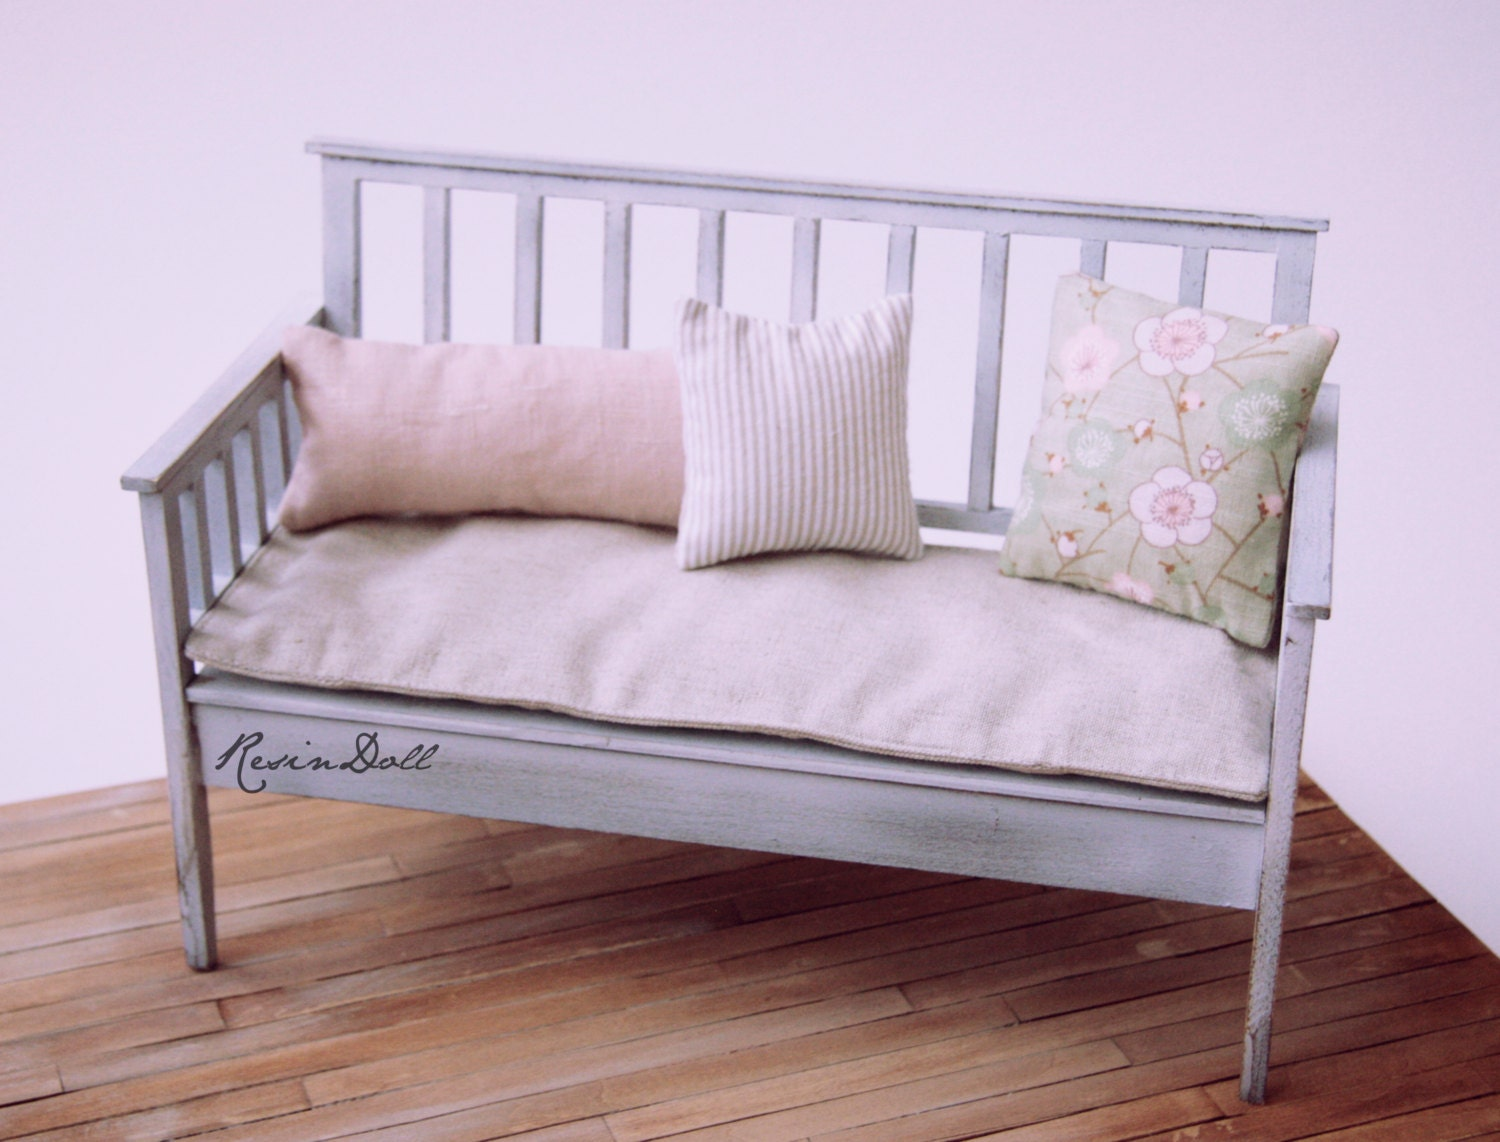 Shabby Chic Benches 28 Images French Shabby Chic Bench Cushioned Shabby Chic Painted Pine